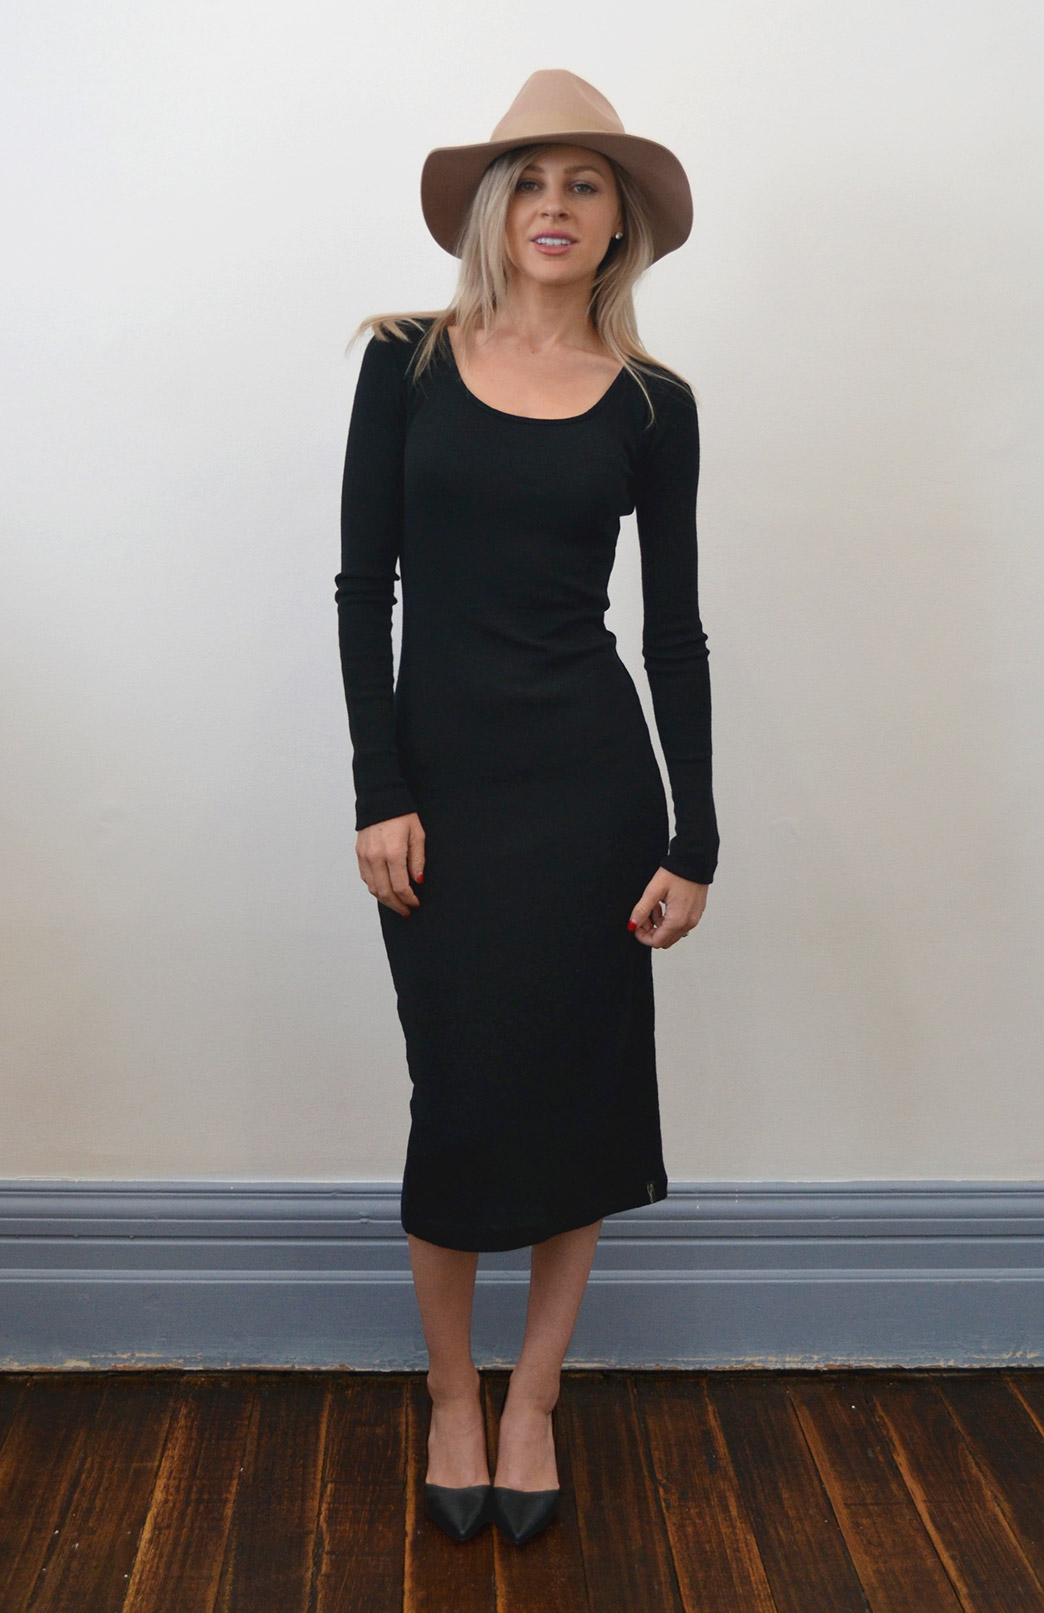 Lana Midi Dress - Women's Black Winter Wool Midi Length Dress with long sleeves - Smitten Merino Tasmania Australia